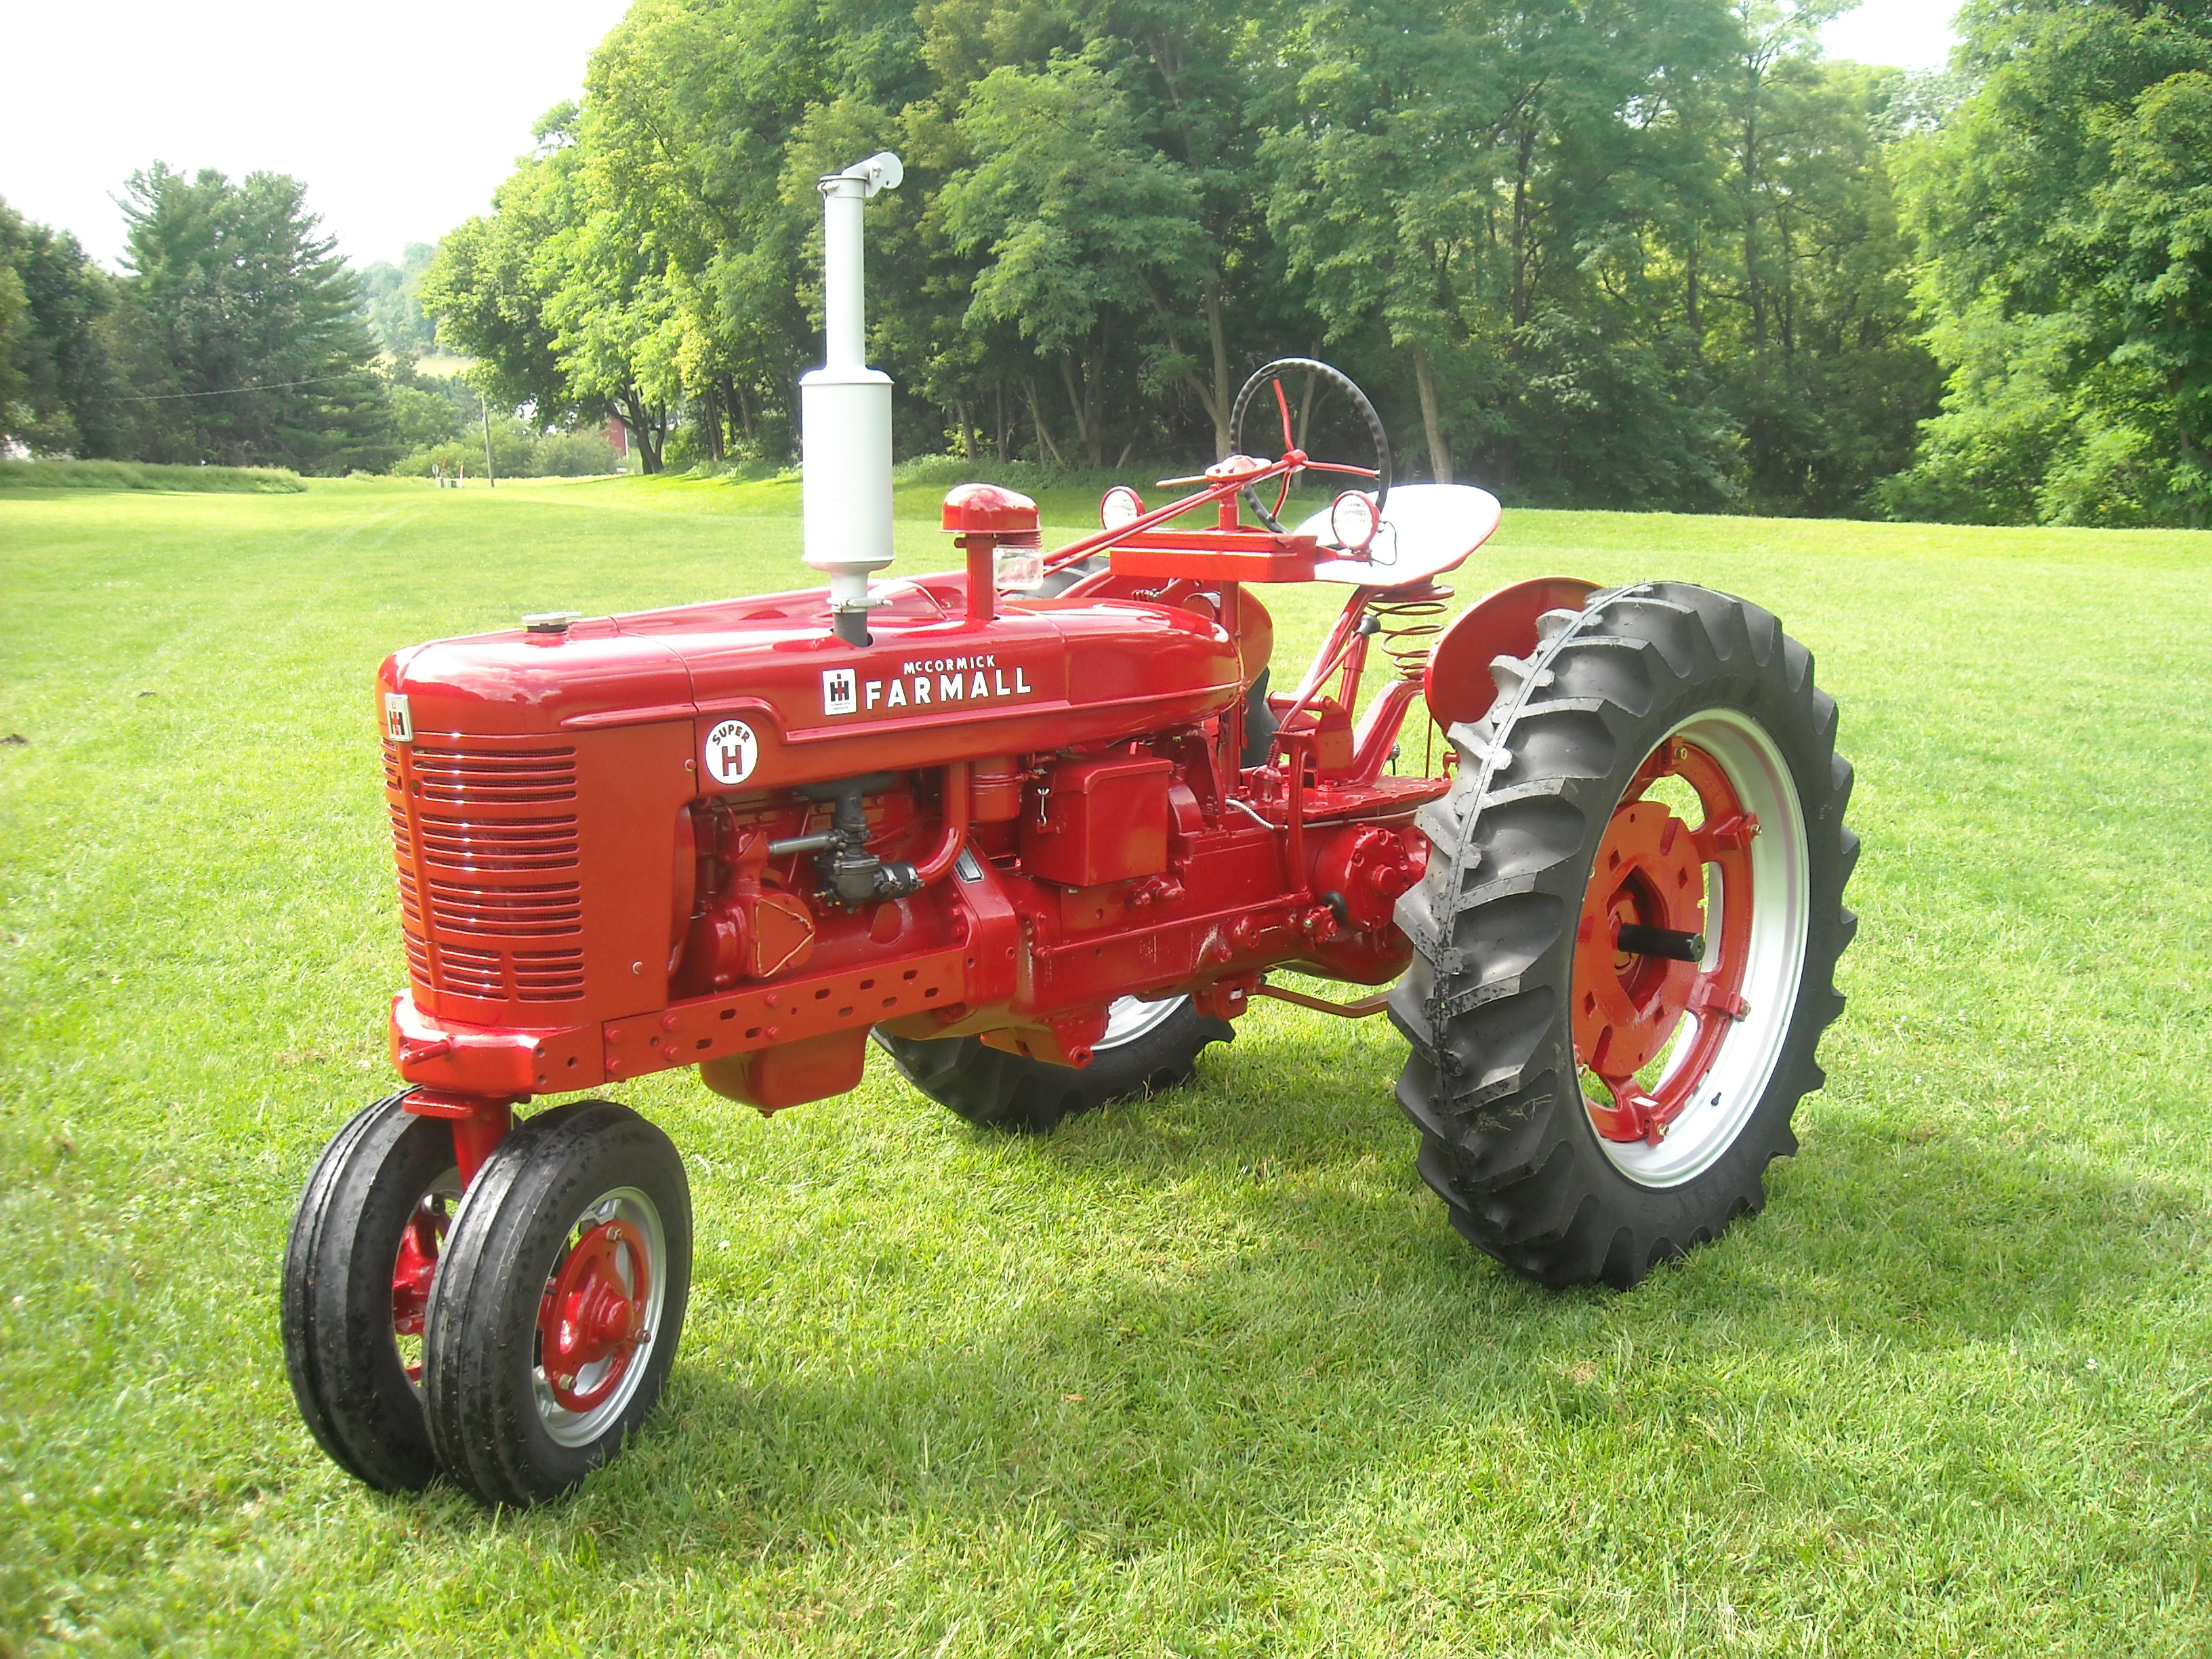 Farmall International Archives Page 22 Of 48 Antique Tractor Blog Wiring Harness Fellow Enthusiast And Steiner Parts Customer Riley Hanson Has Asked For Our Vote On His 1953 Super H In This Years Cheveron Delo